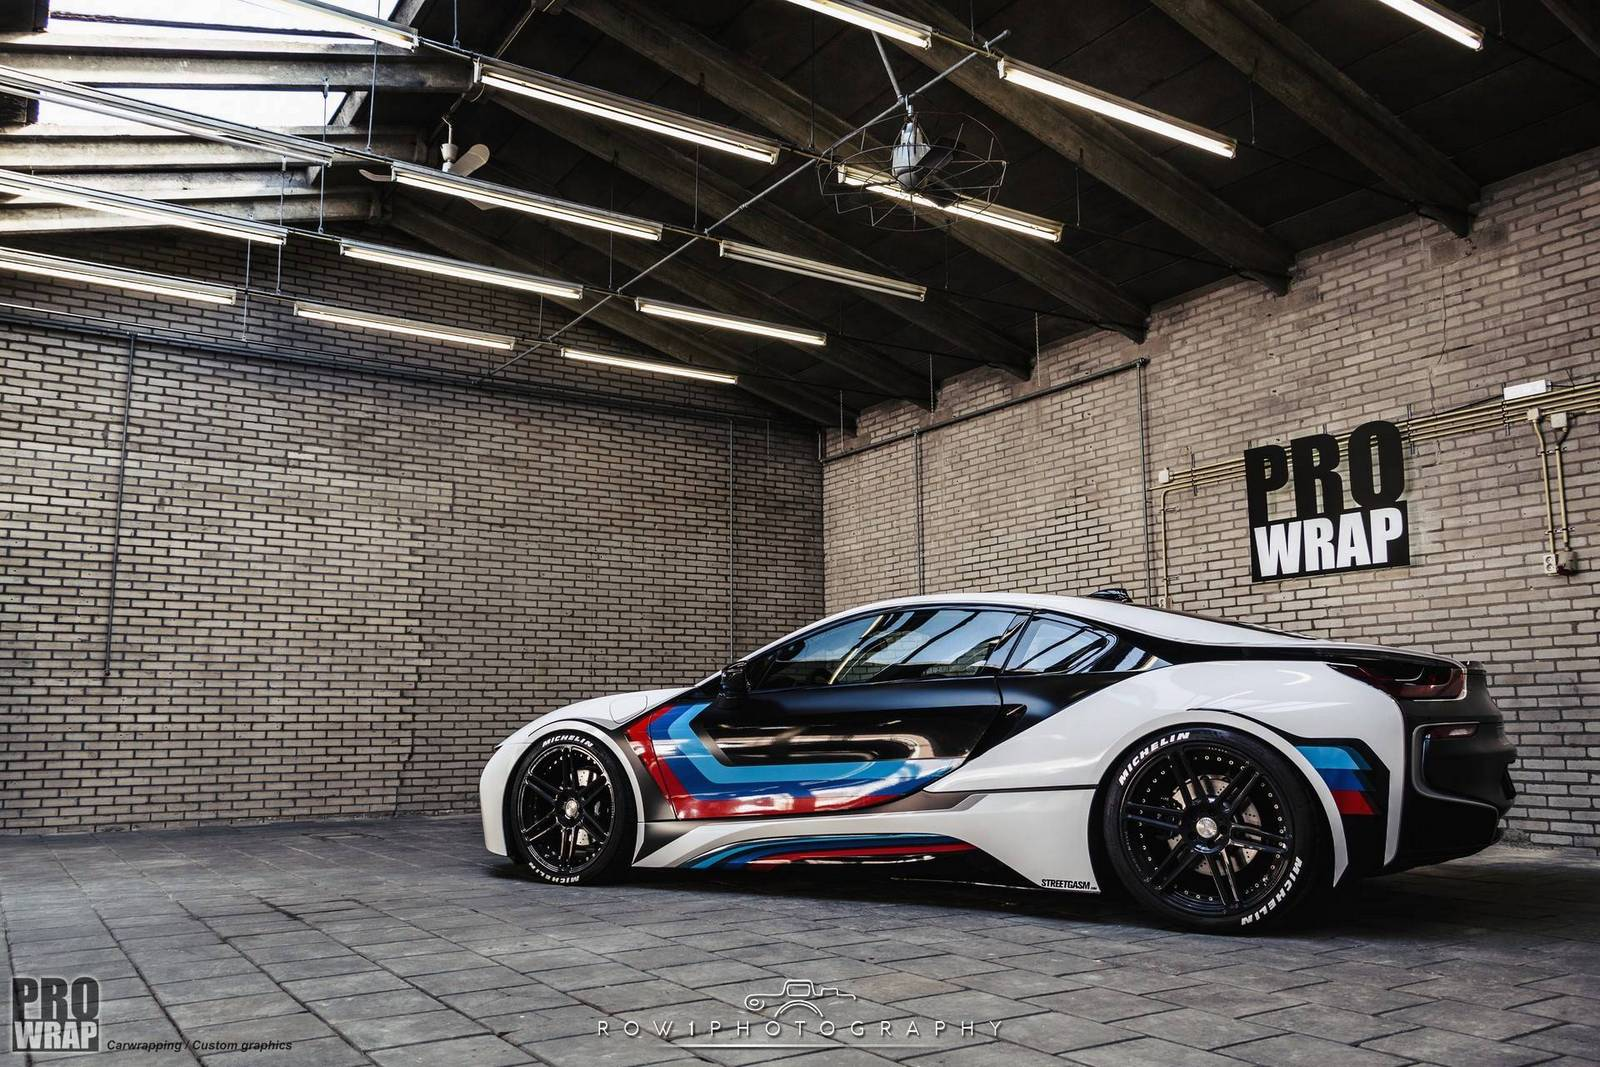 Custom Wrapped Bmw I8 By Prowrap In The Netherlands Gtspirit